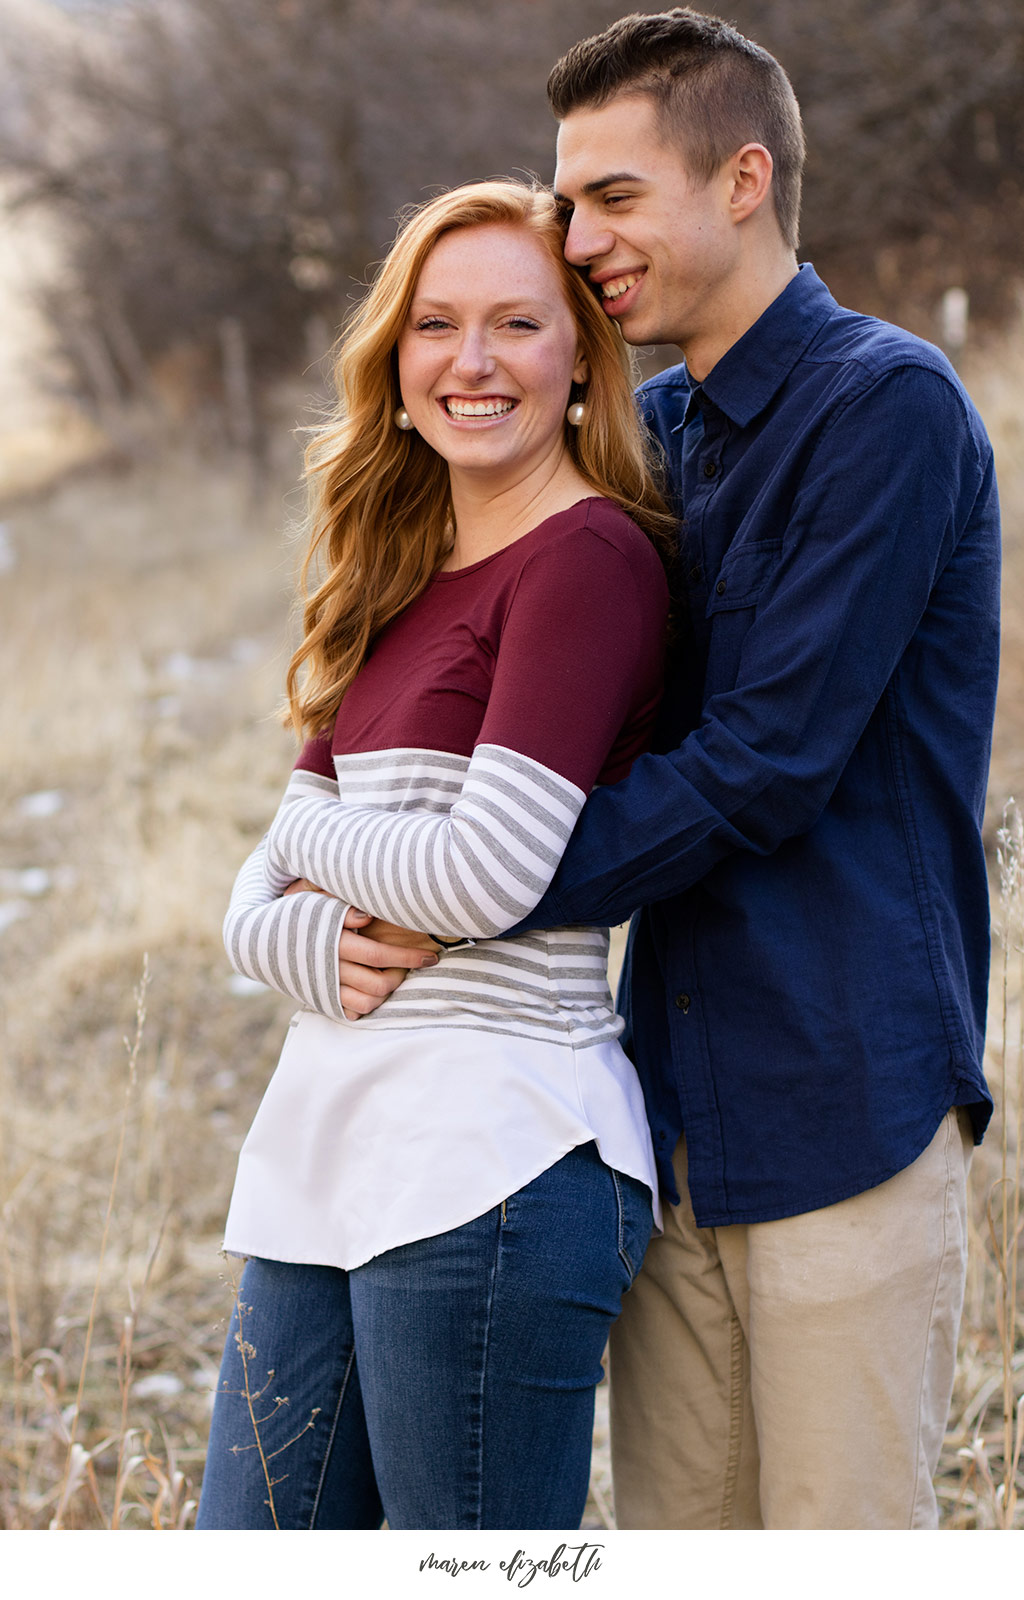 Big Springs Park engagement pictures in Provo Canyon, UT. This location is a short hike from the main parking lot across the bridge. Maren Elizabeth Photography | Arizona Photographer